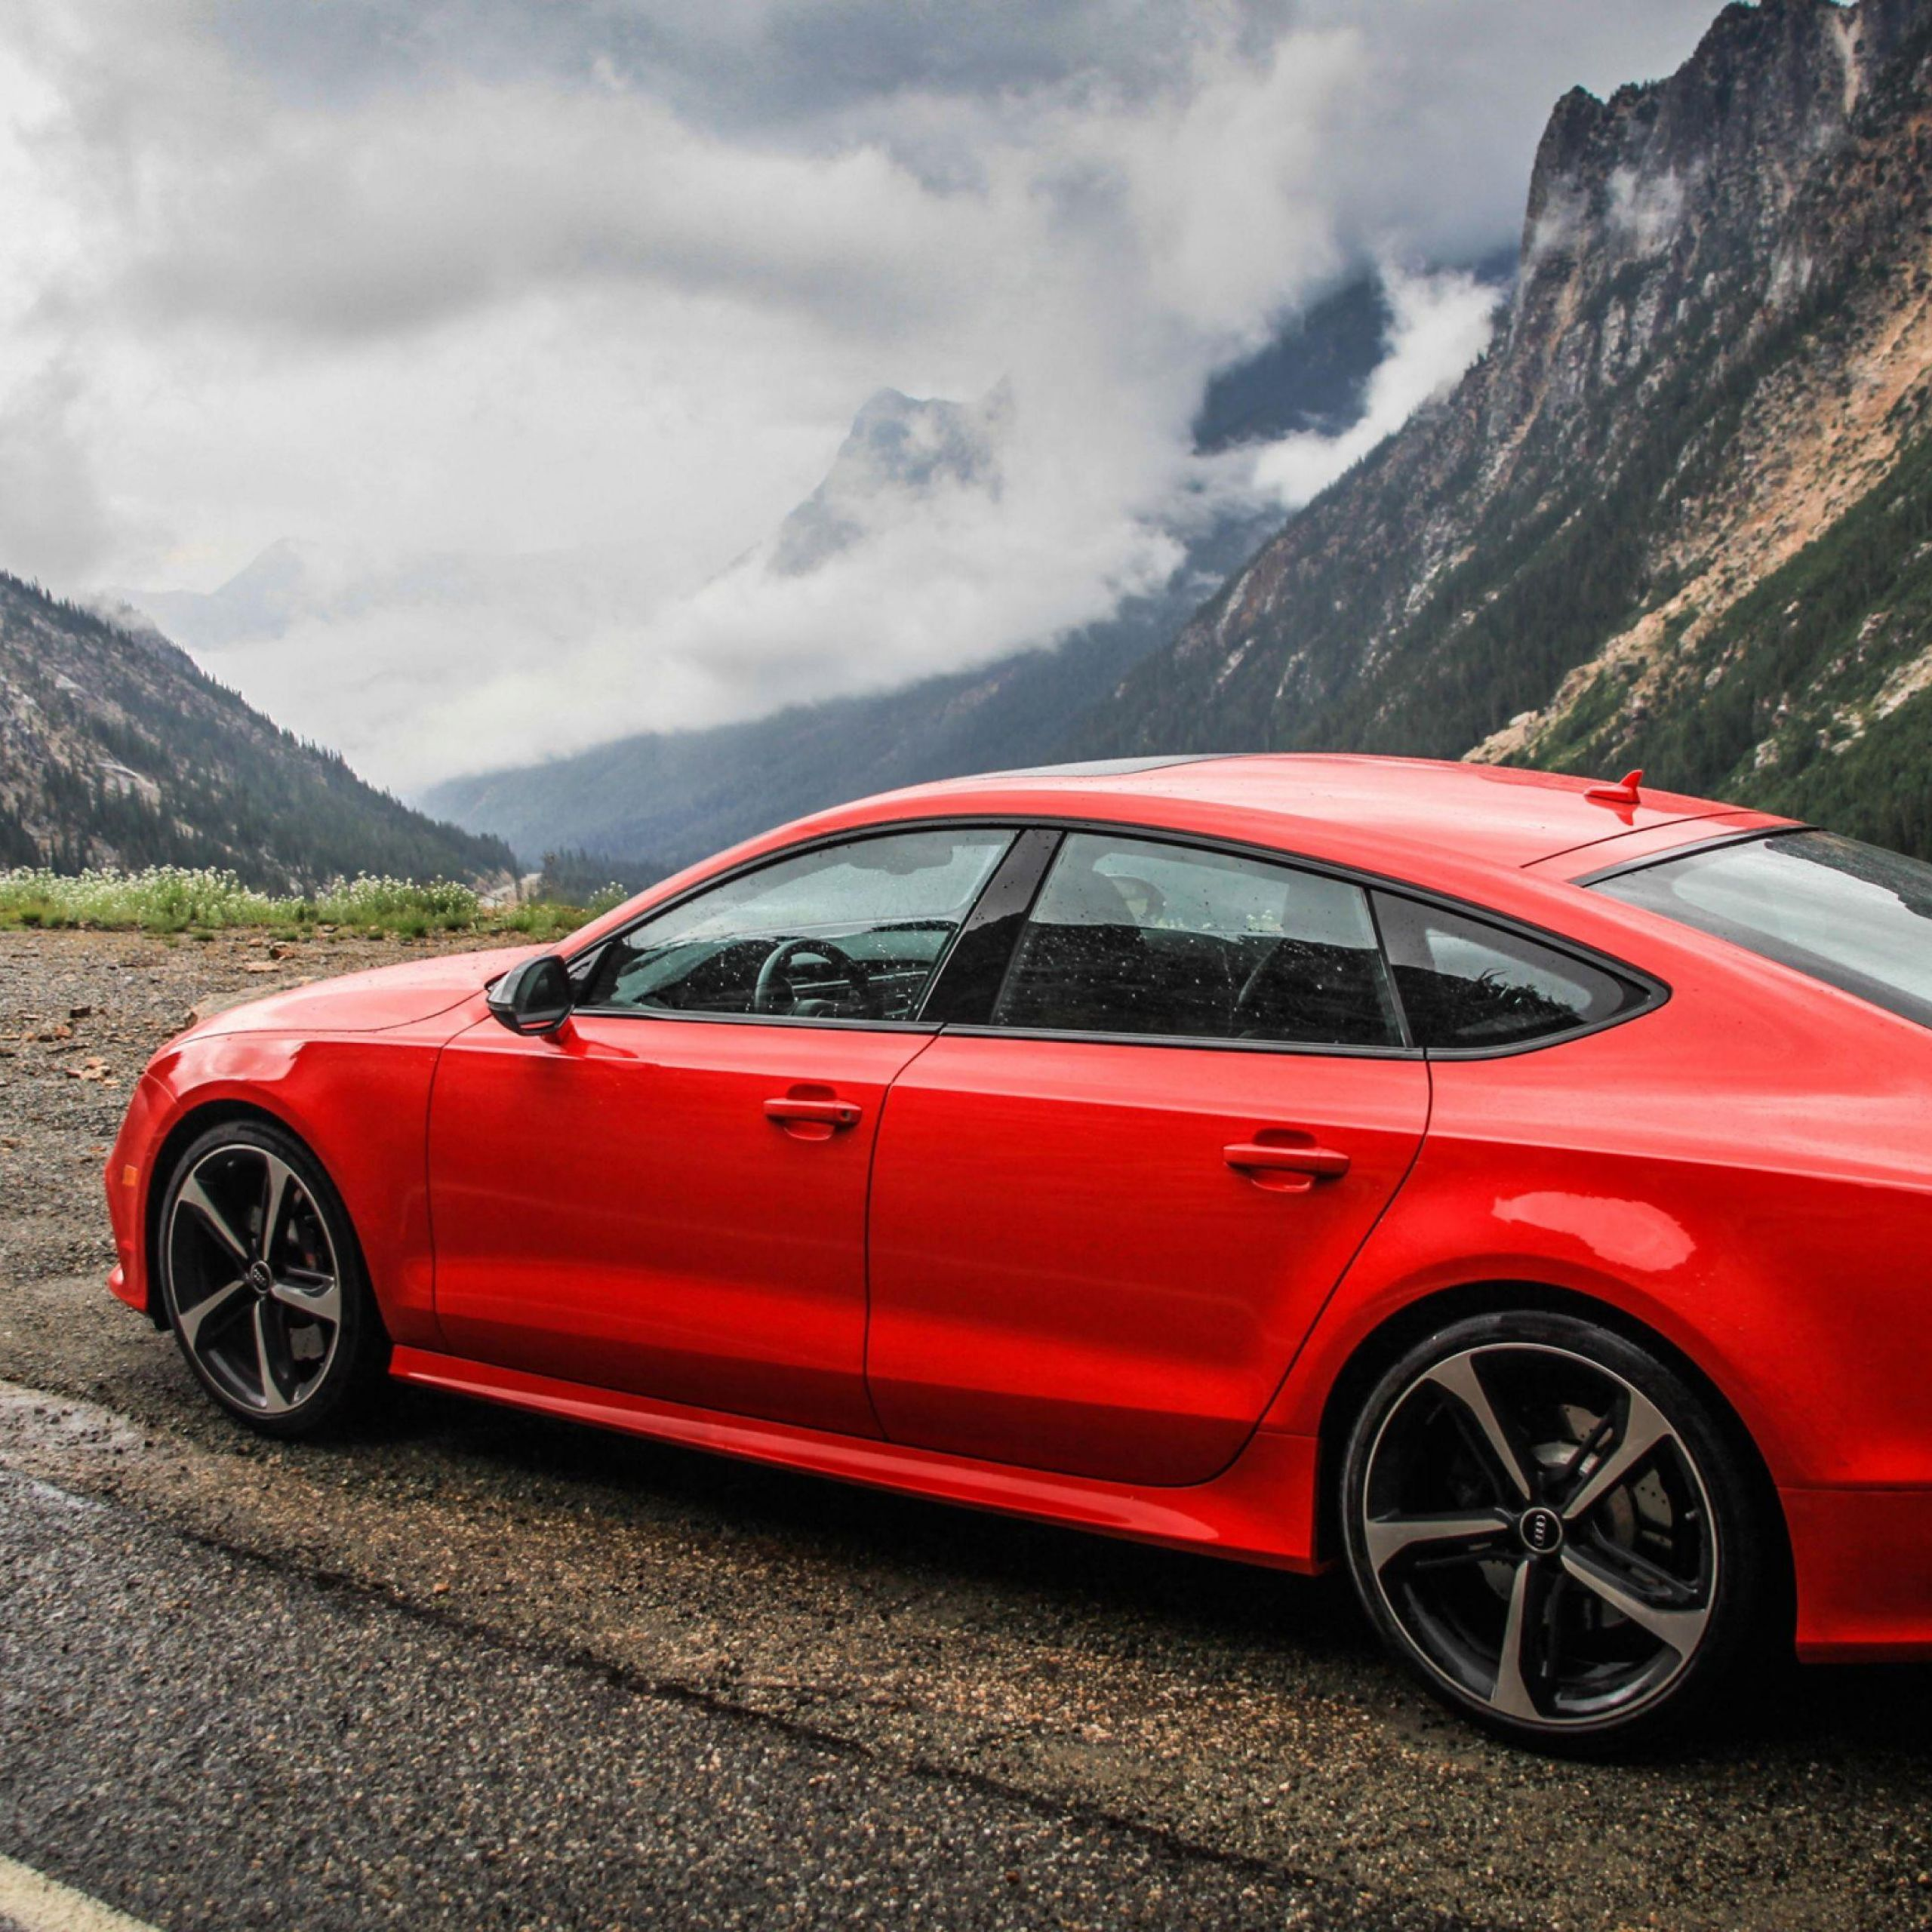 Audi A7 2015 Luxury Audi Rs7 Wallpapers top Free Audi Rs7 Backgrounds